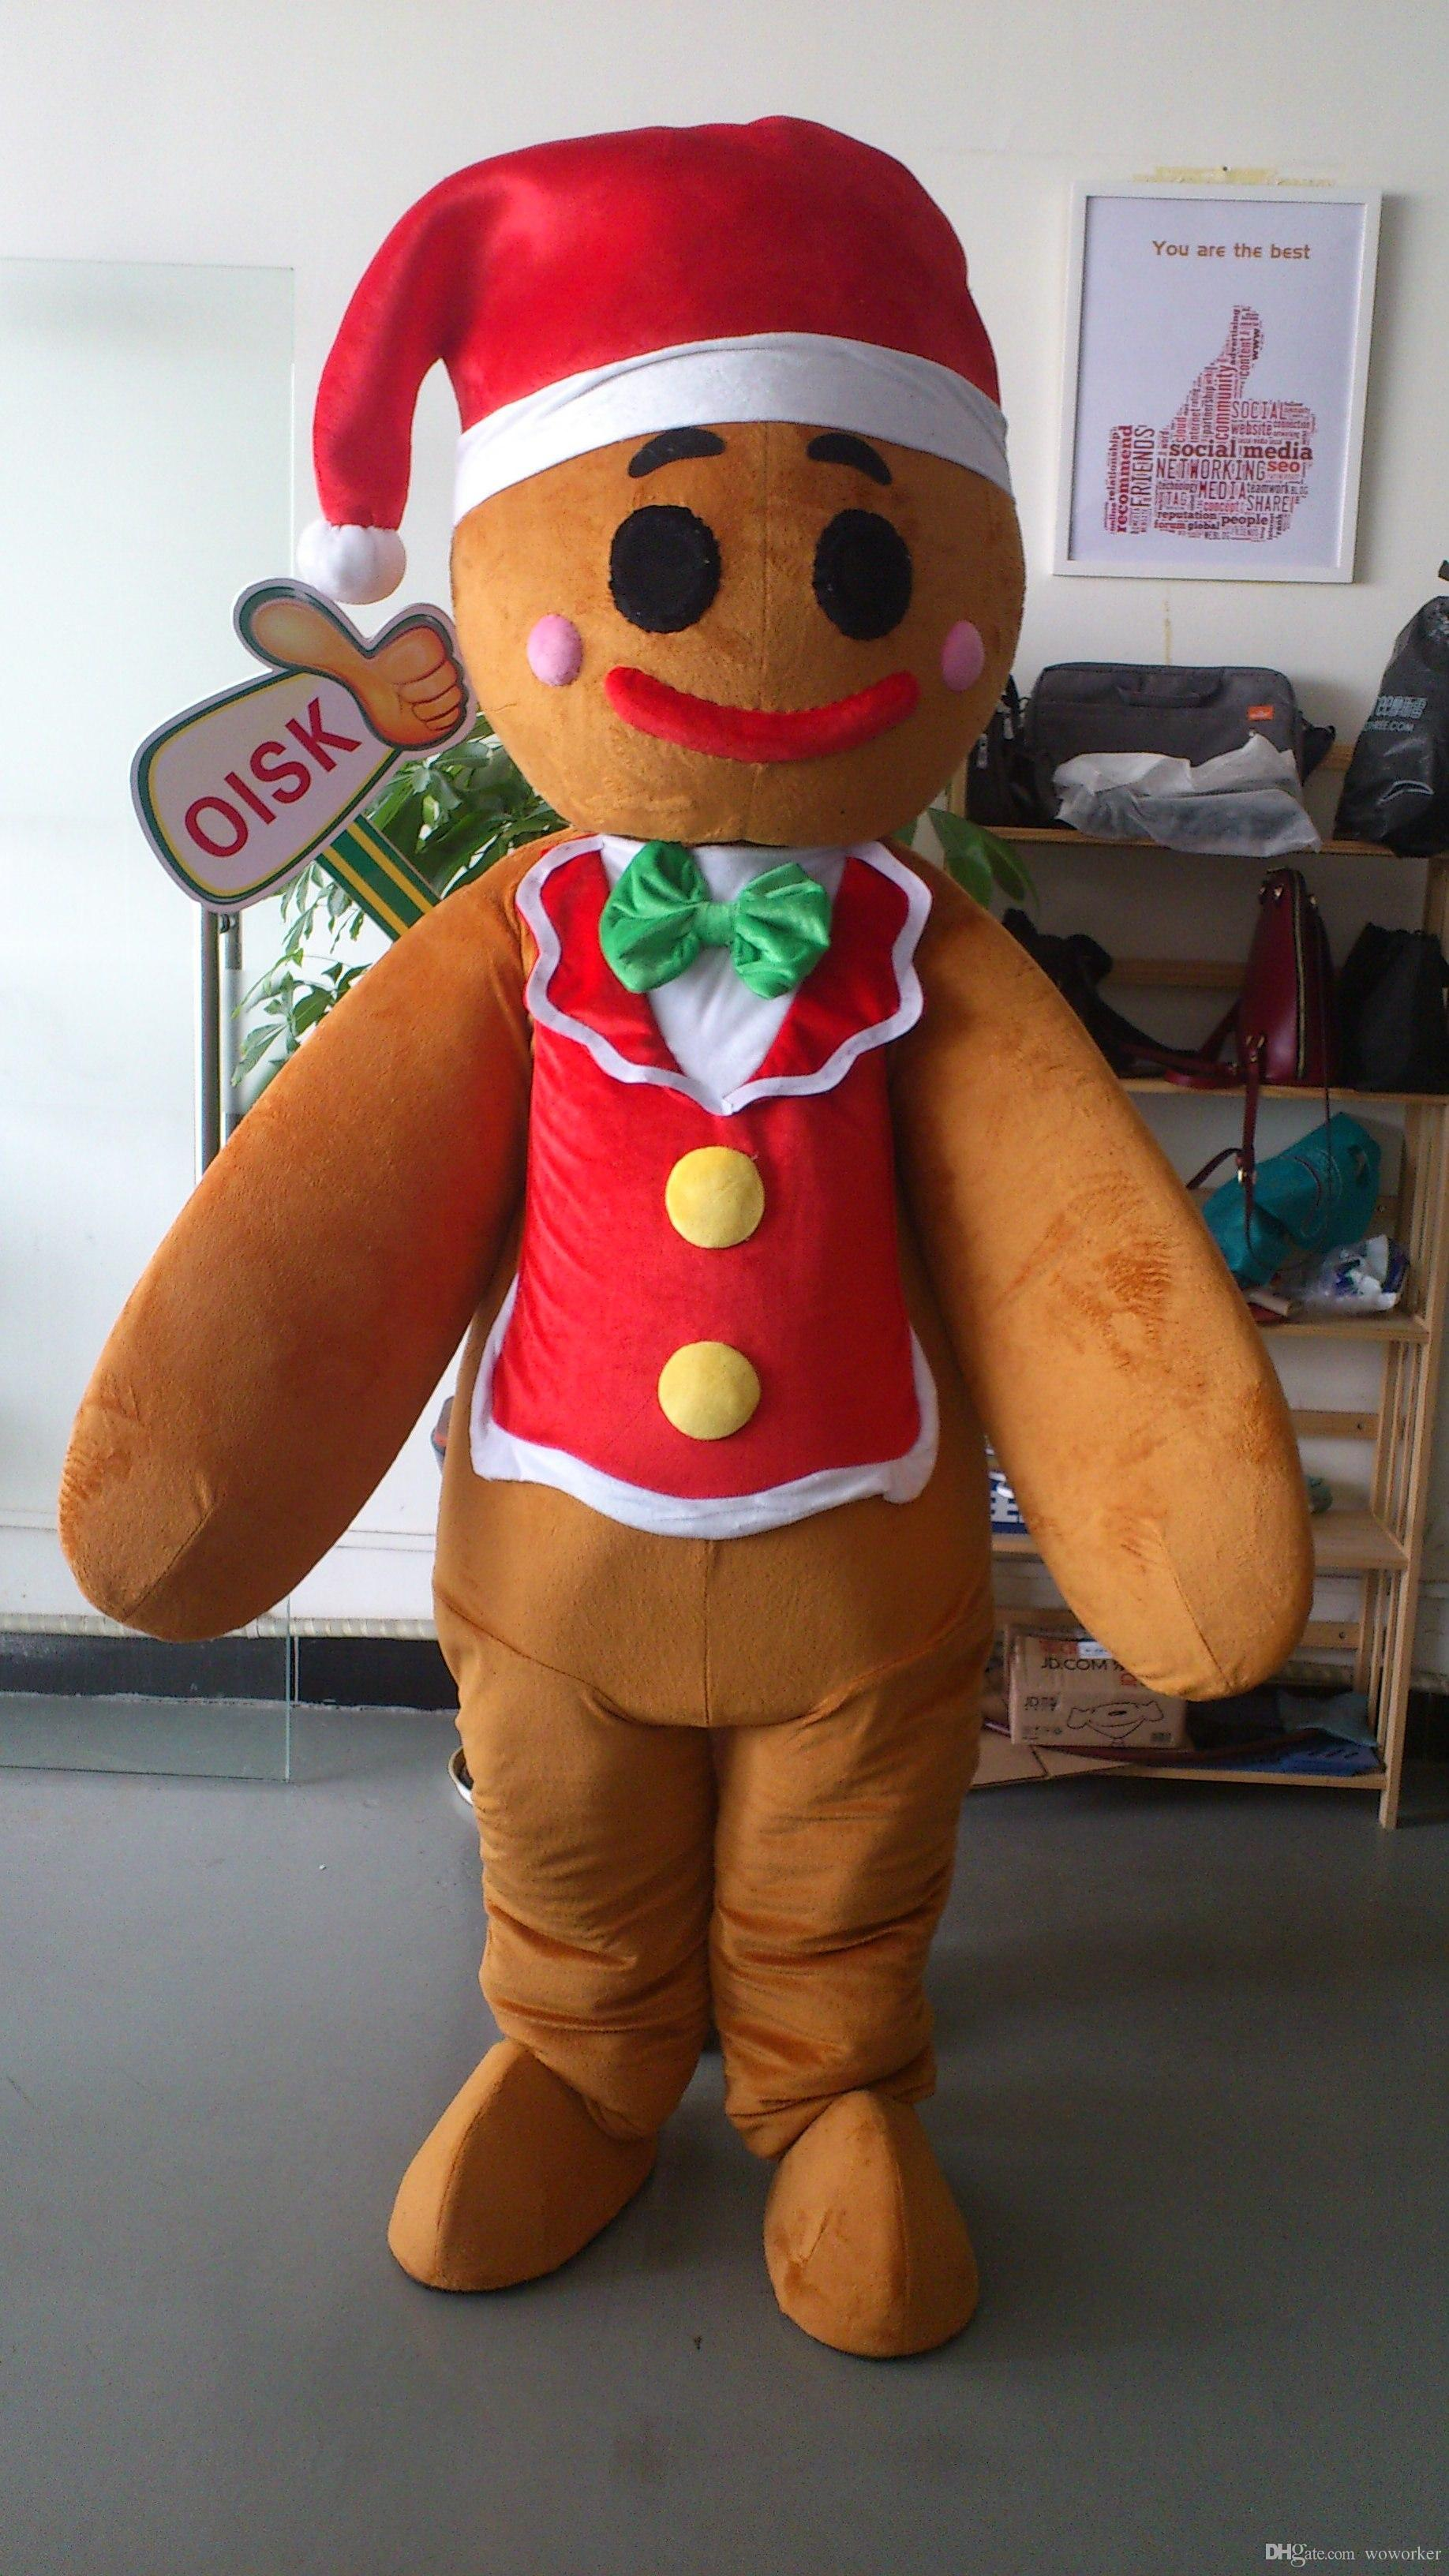 Actual Picture Gingerbread Man Mascot Costume Adult Size Fancy Dress For Party Mascot Prices Character Suits For Sale From Woworker $209.44| Dhgate.Com & Actual Picture Gingerbread Man Mascot Costume Adult Size Fancy Dress ...